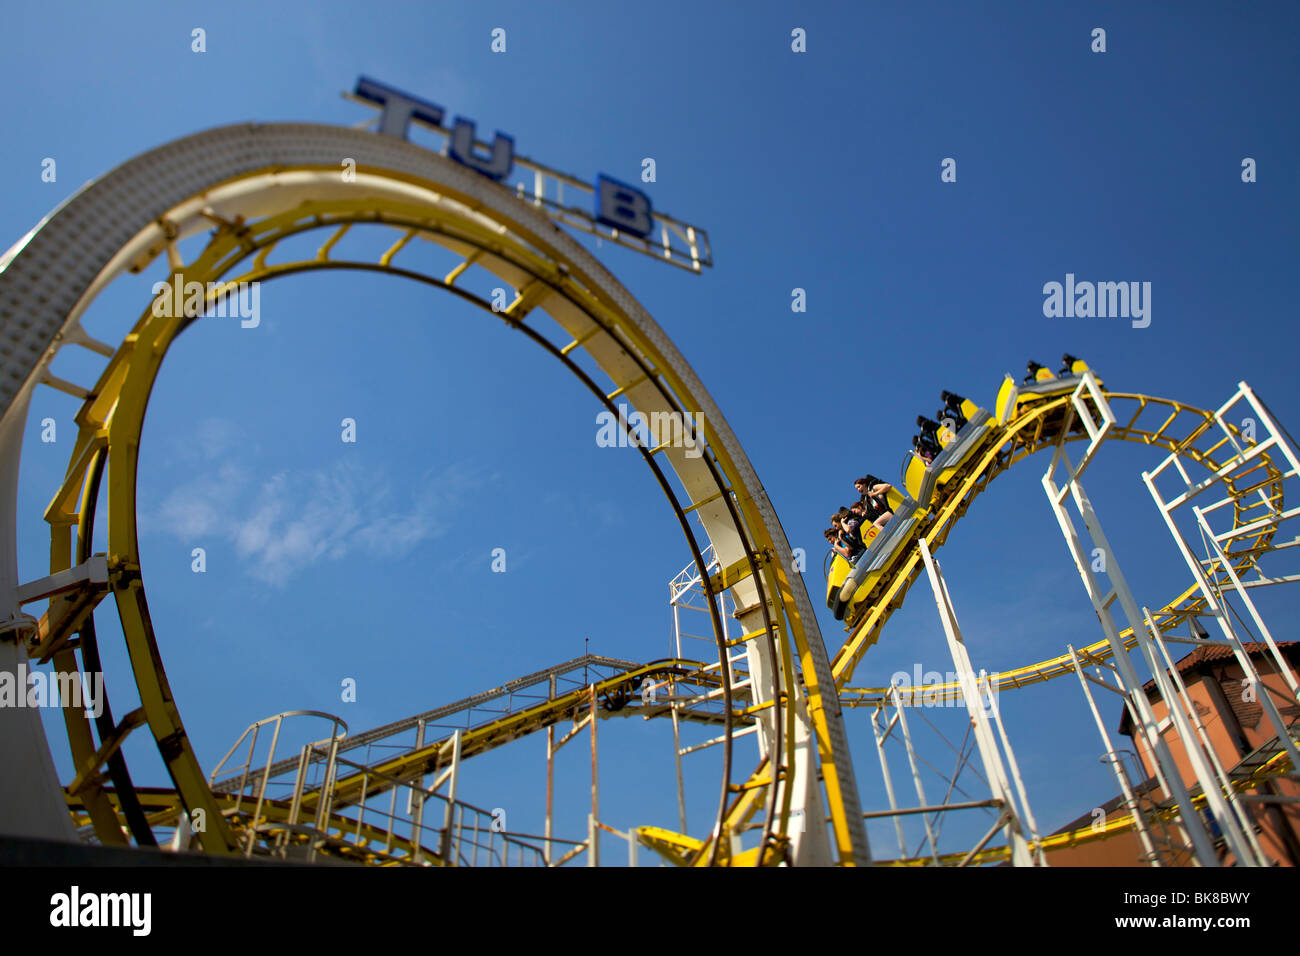 8e403f2223a00 The loop the loop on the rollercoaster on Brighton Pier - Stock Image